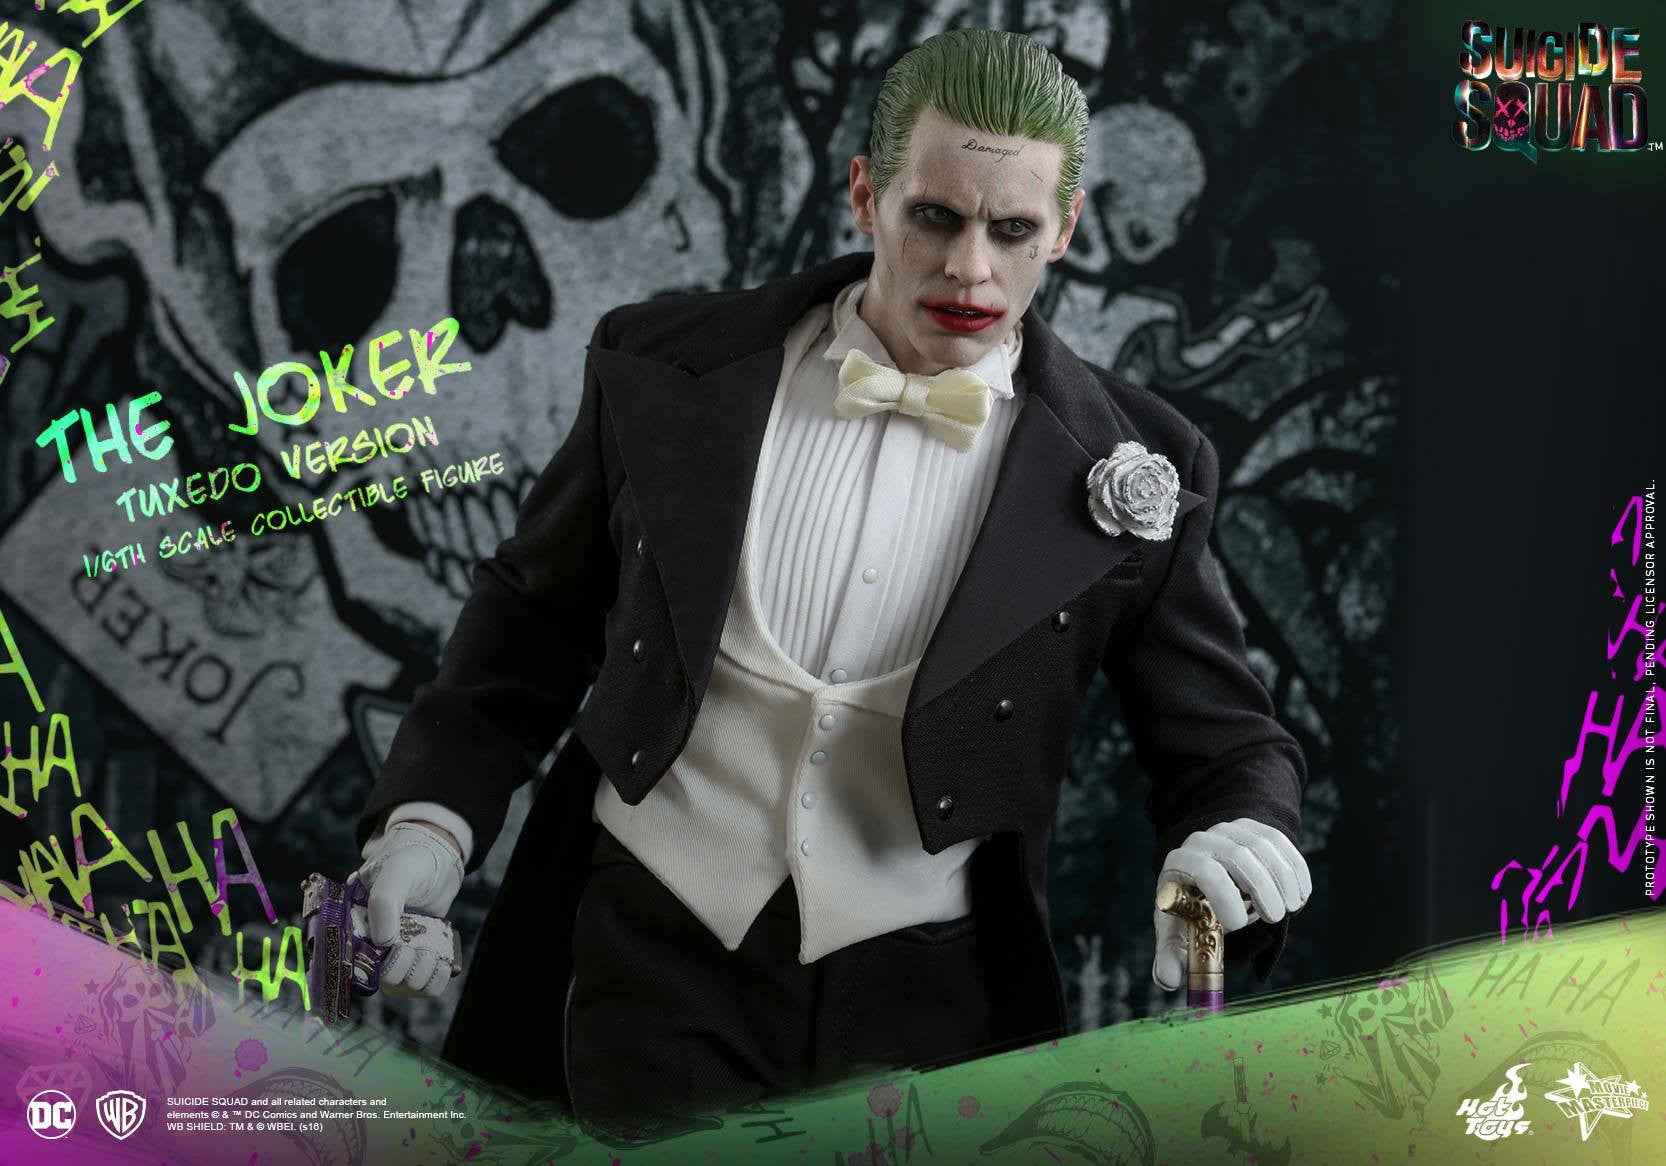 Hot Toys - MMS395 - Suicide Squad - The Joker (Tuxedo Version) - Marvelous Toys - 6